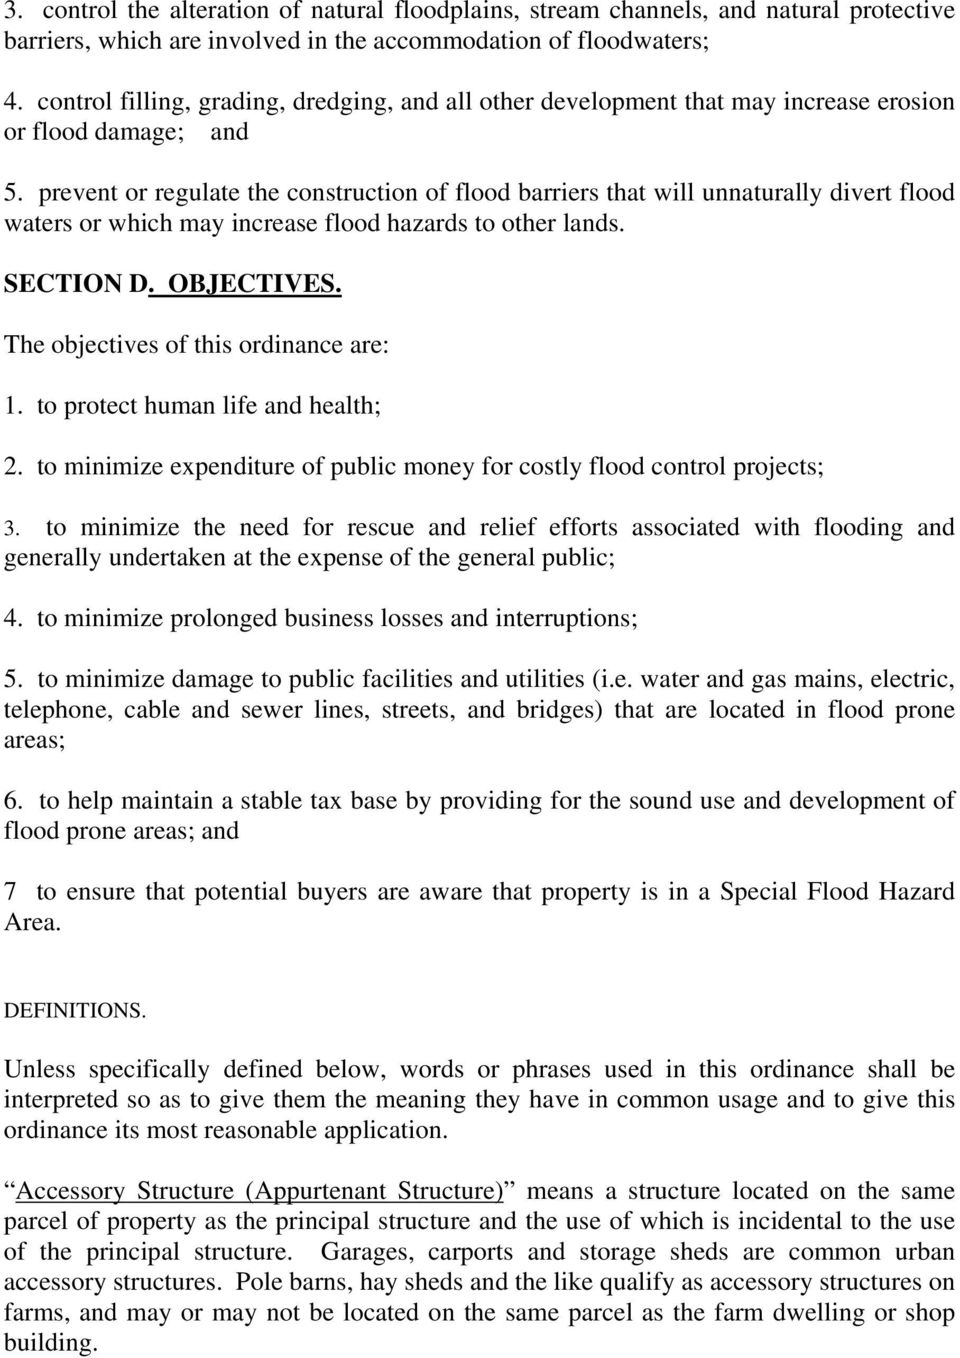 prevent or regulate the construction of flood barriers that will unnaturally divert flood waters or which may increase flood hazards to other lands. SECTION D. OBJECTIVES.